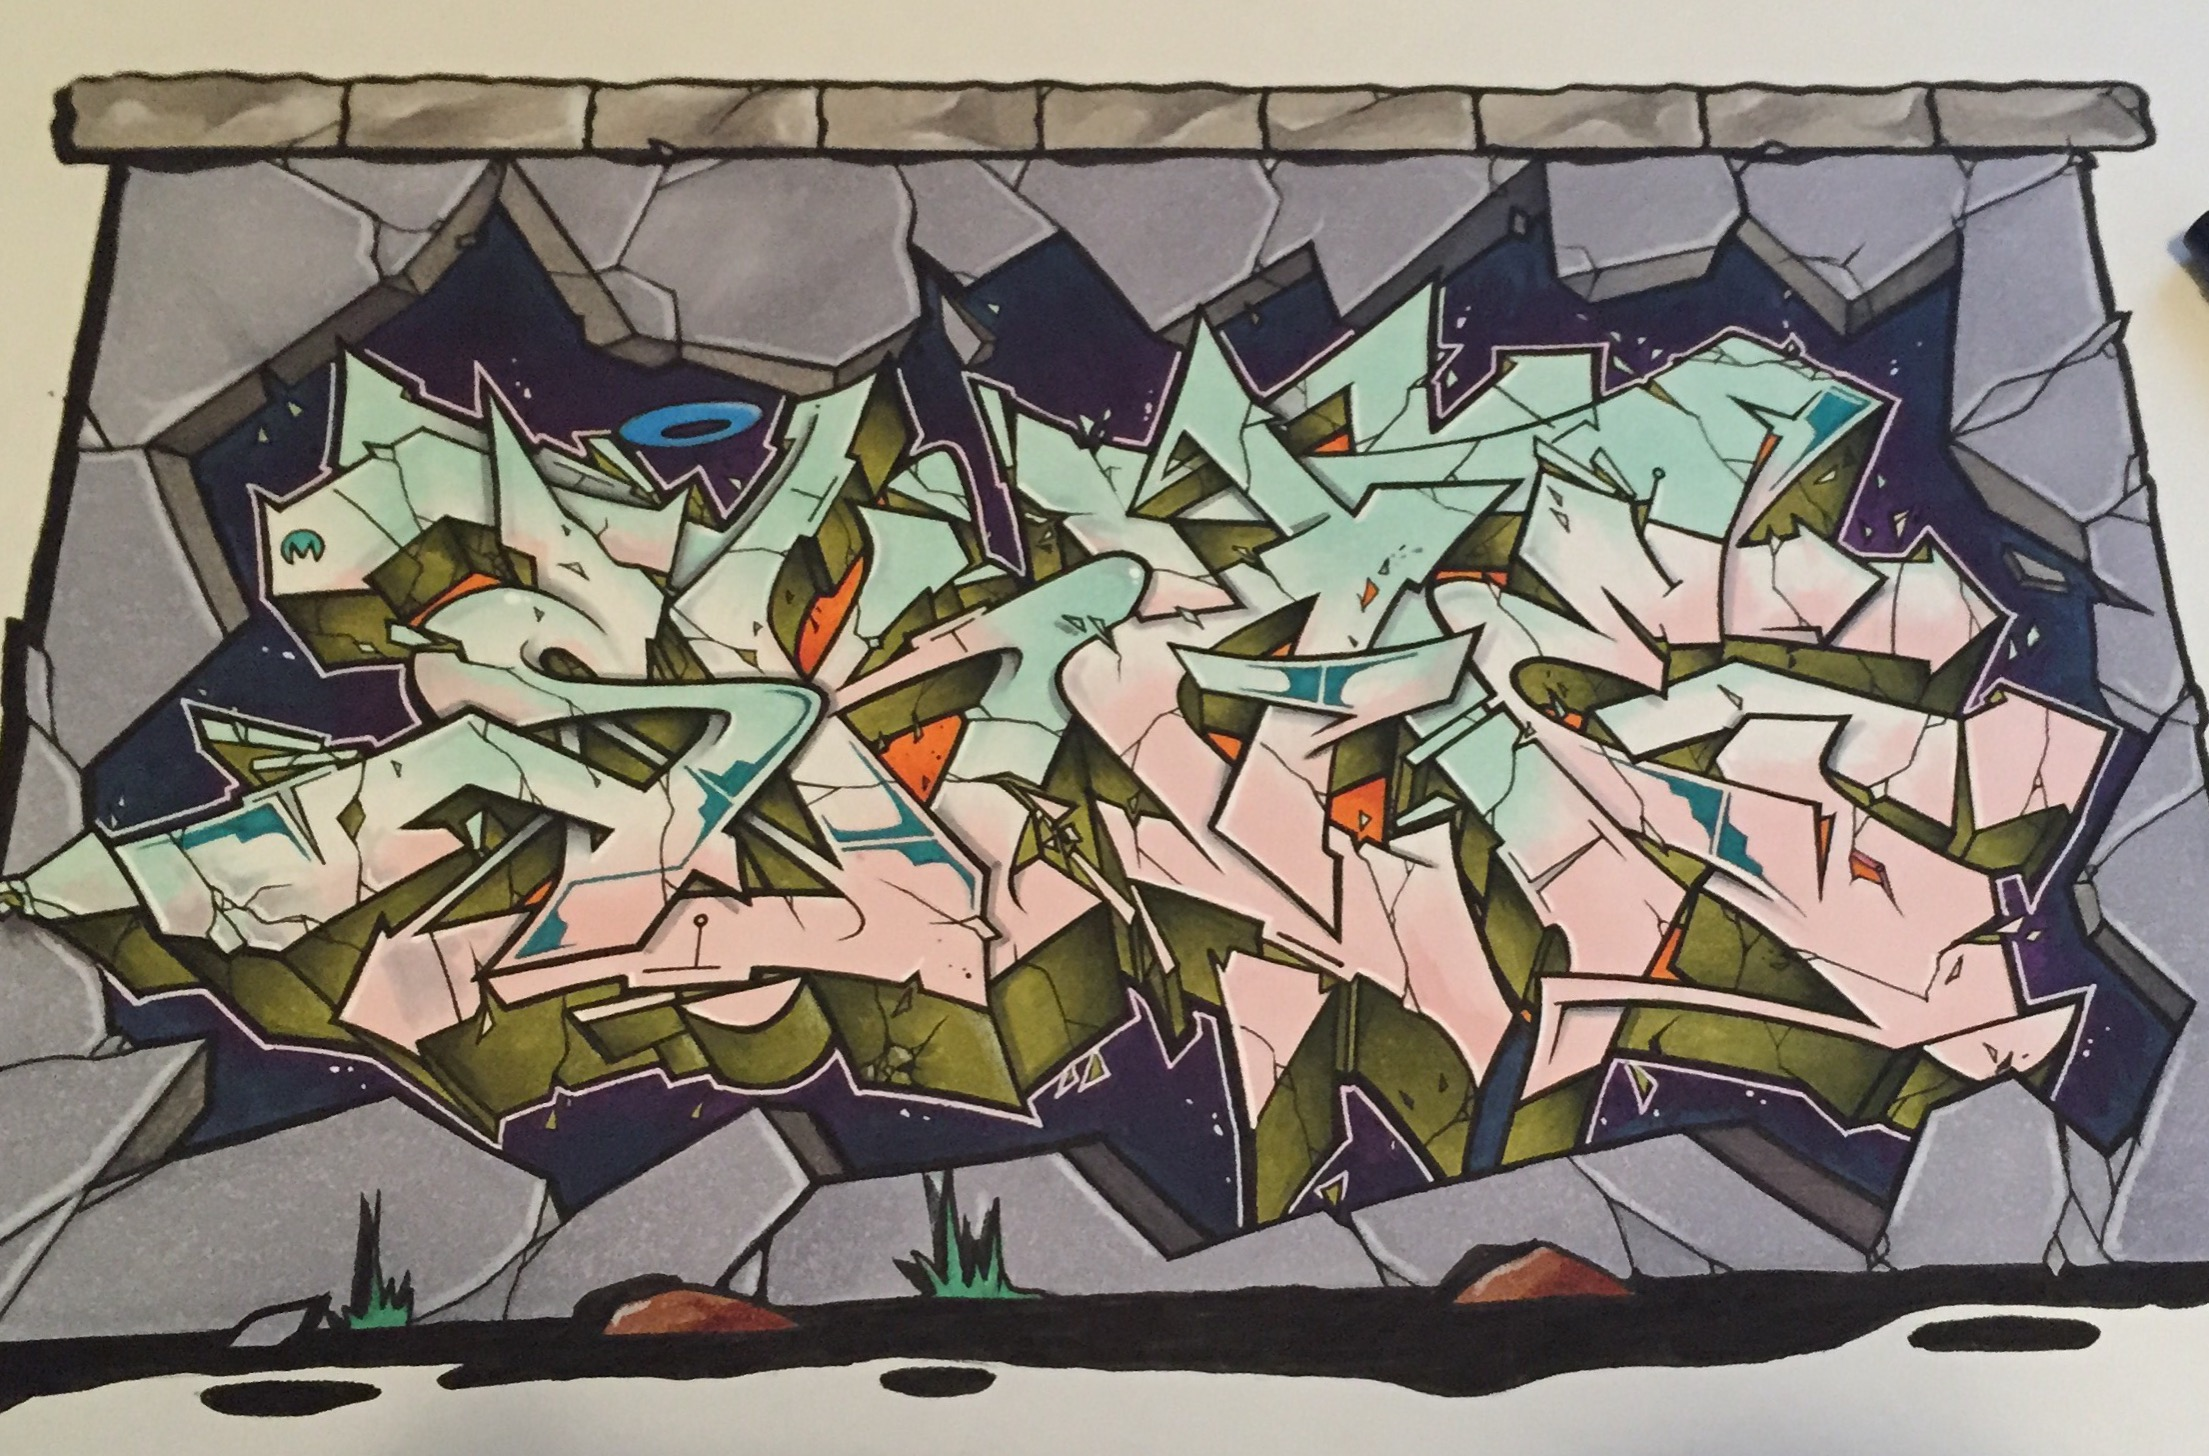 SKAE Exchange by Nover, markers & pen on paper.